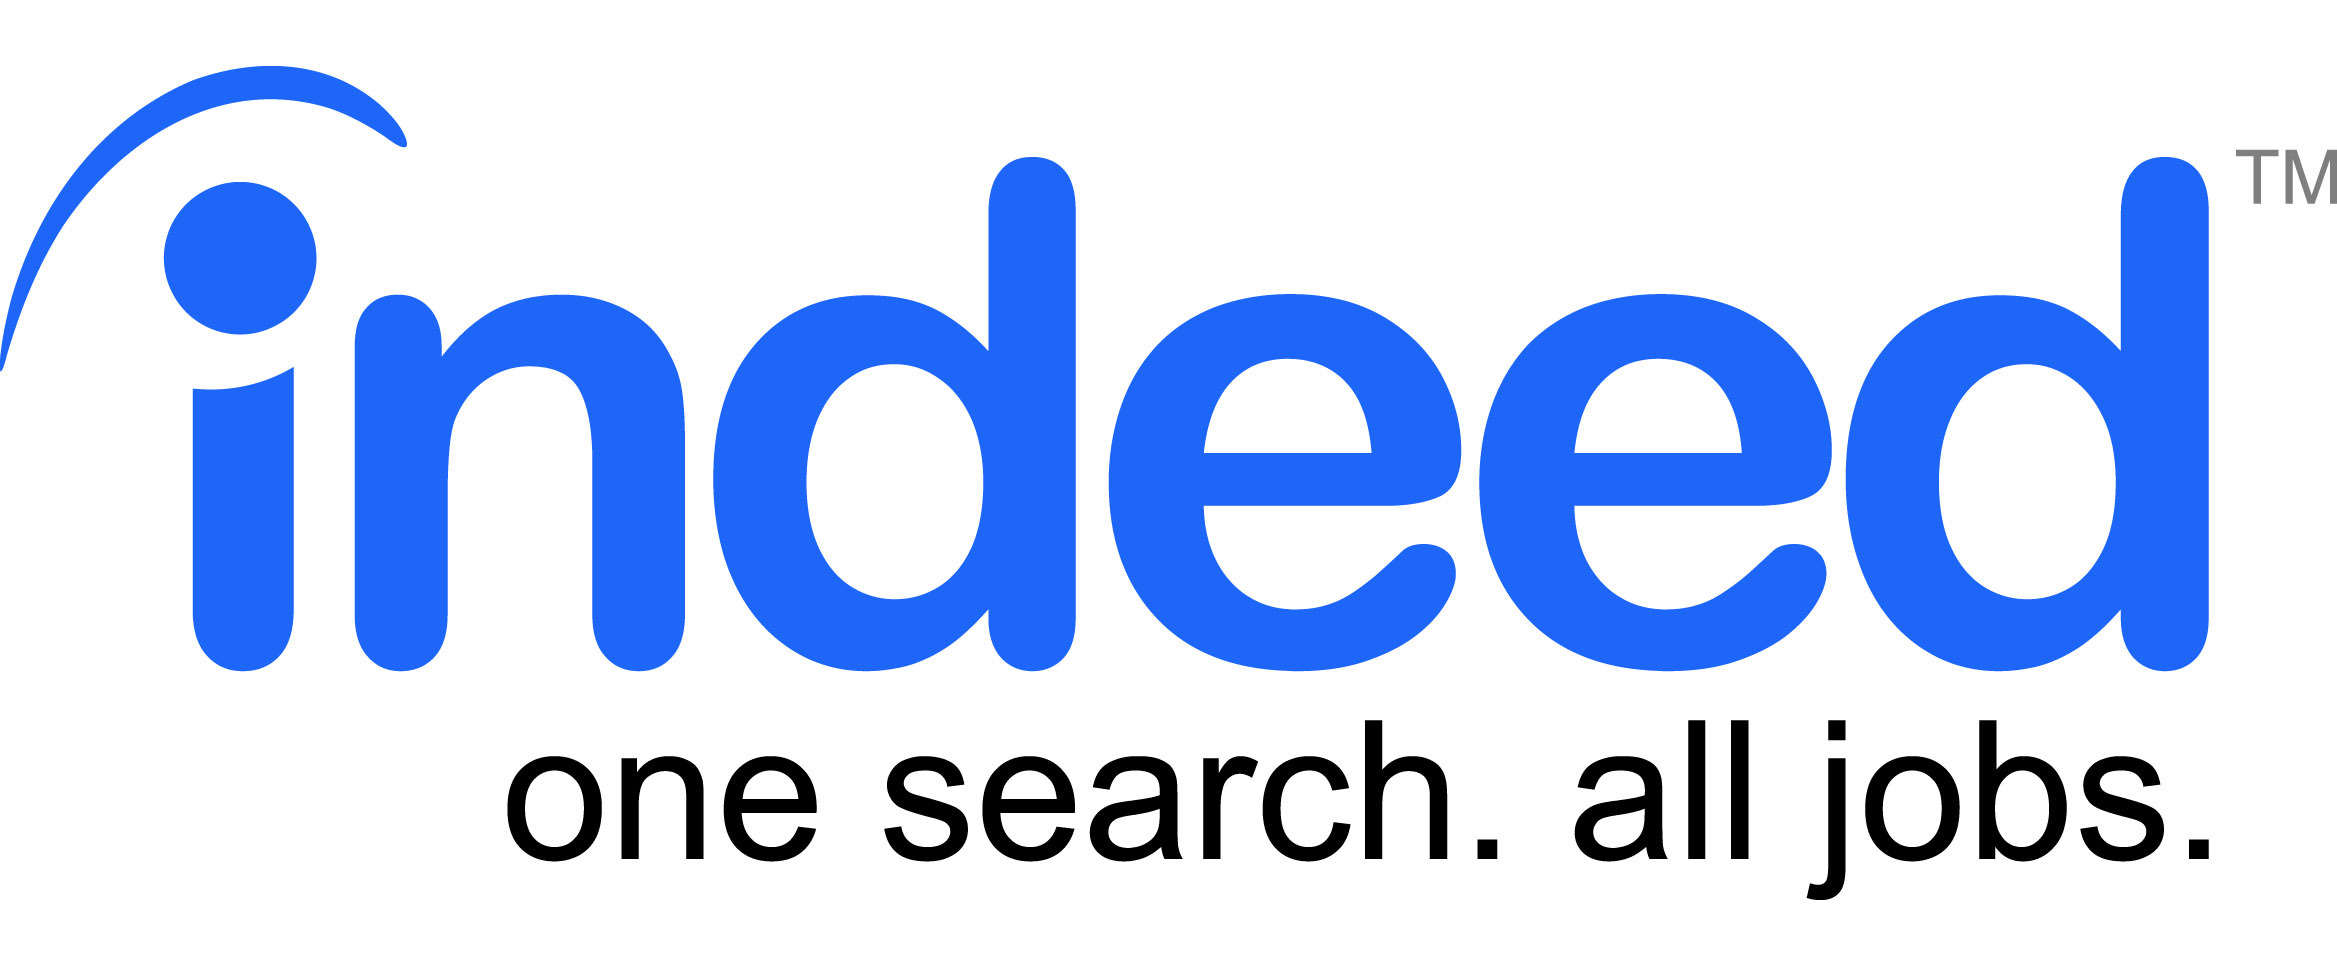 indeed solidifies position as 1 global site for job seekers full size